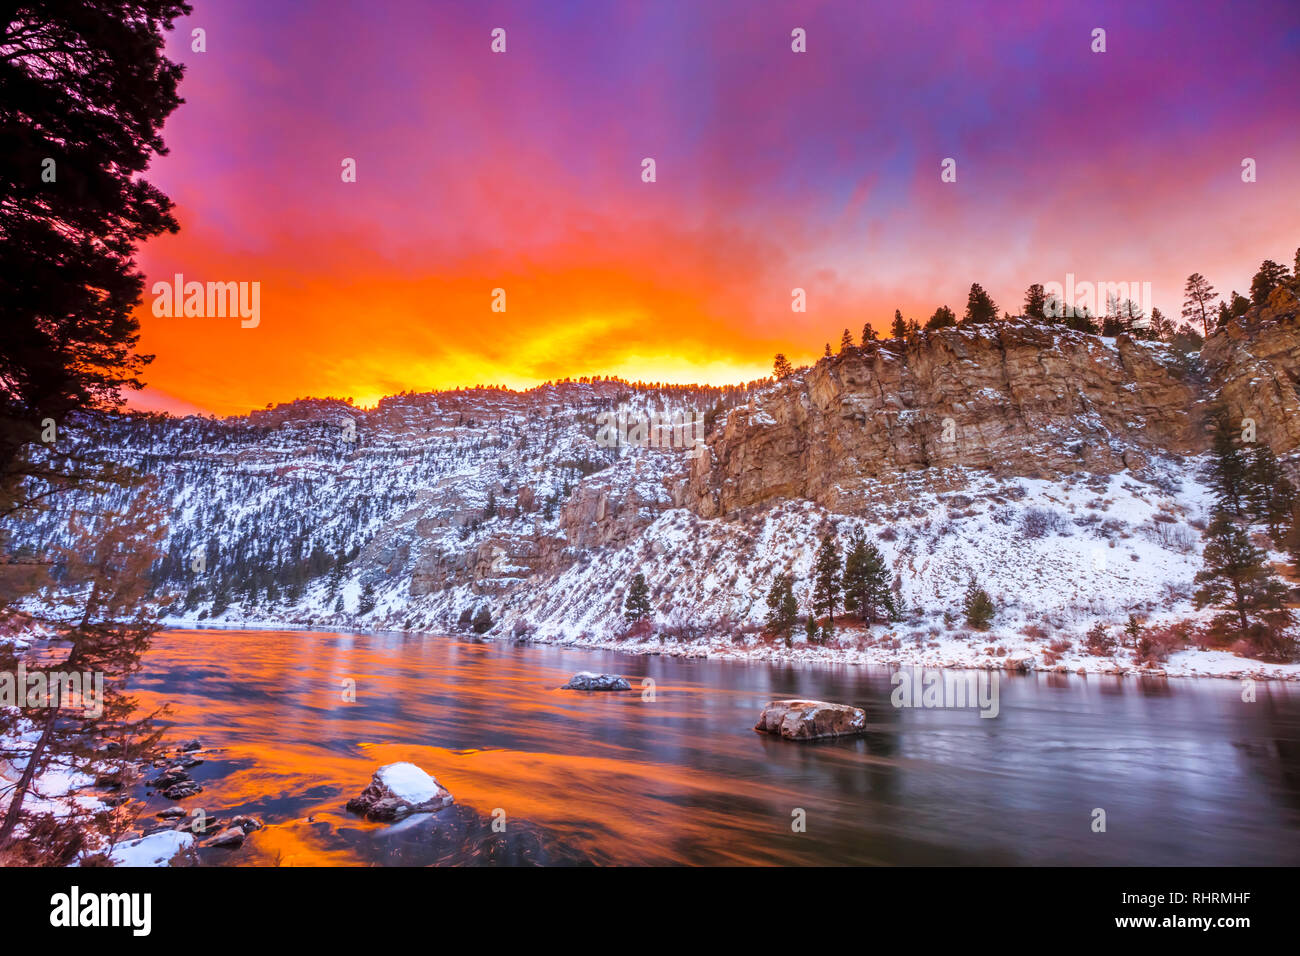 sunset over the missouri river in a canyon below hauser dam near helena, montana - Stock Image